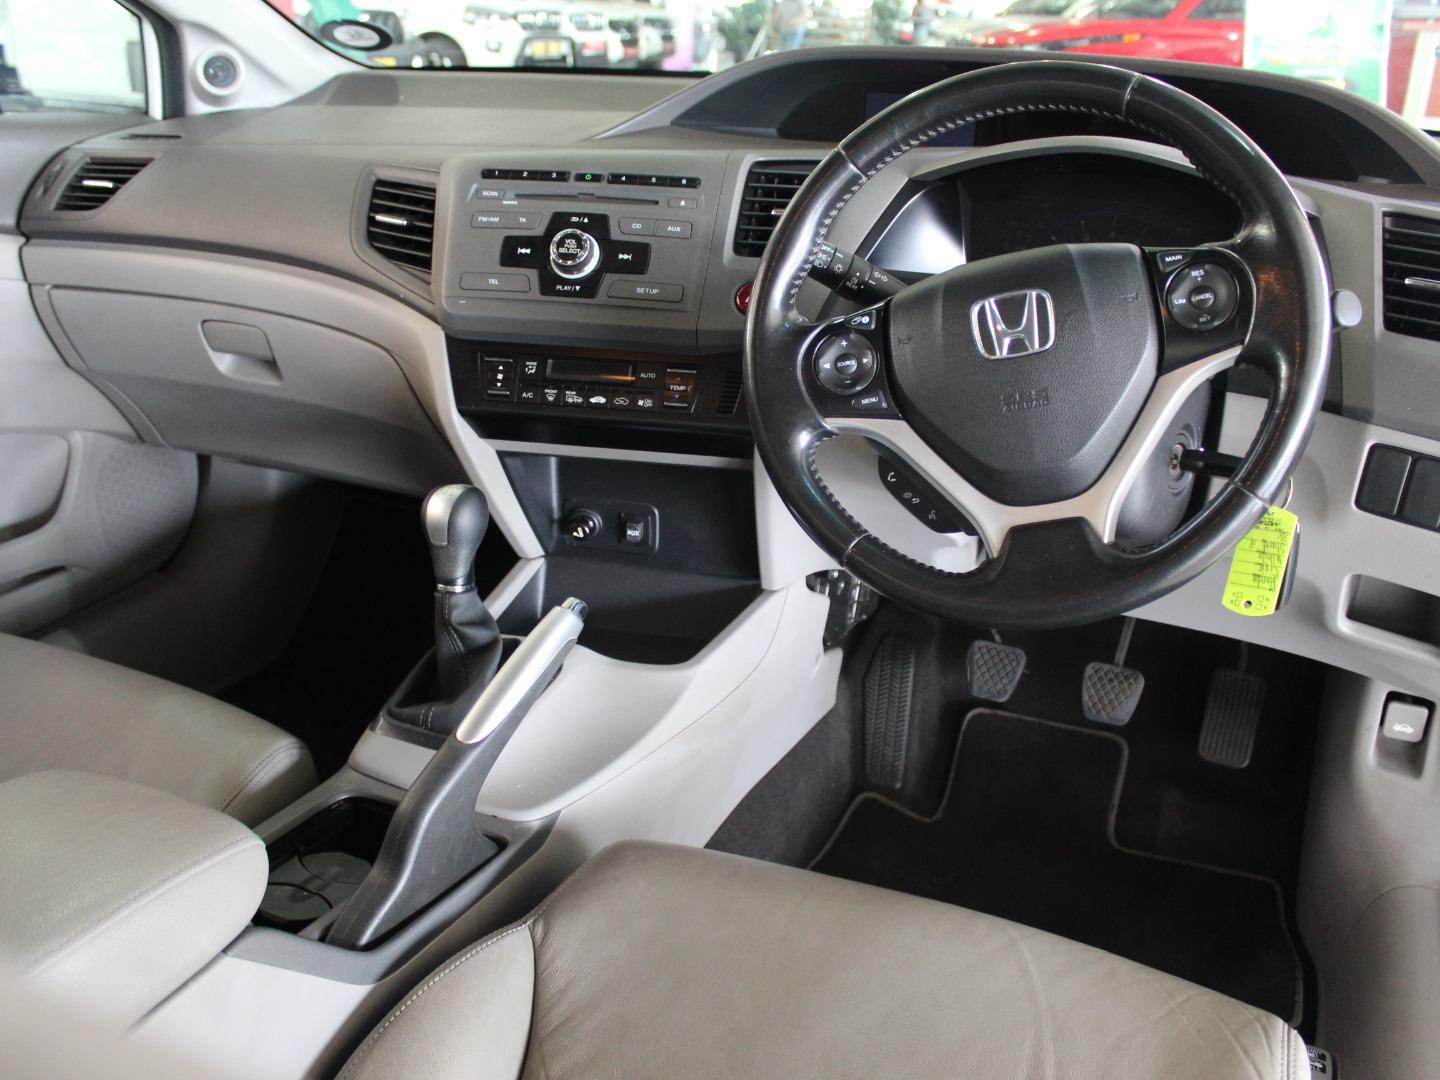 2012 Honda Jazz 1.4- Picture 2